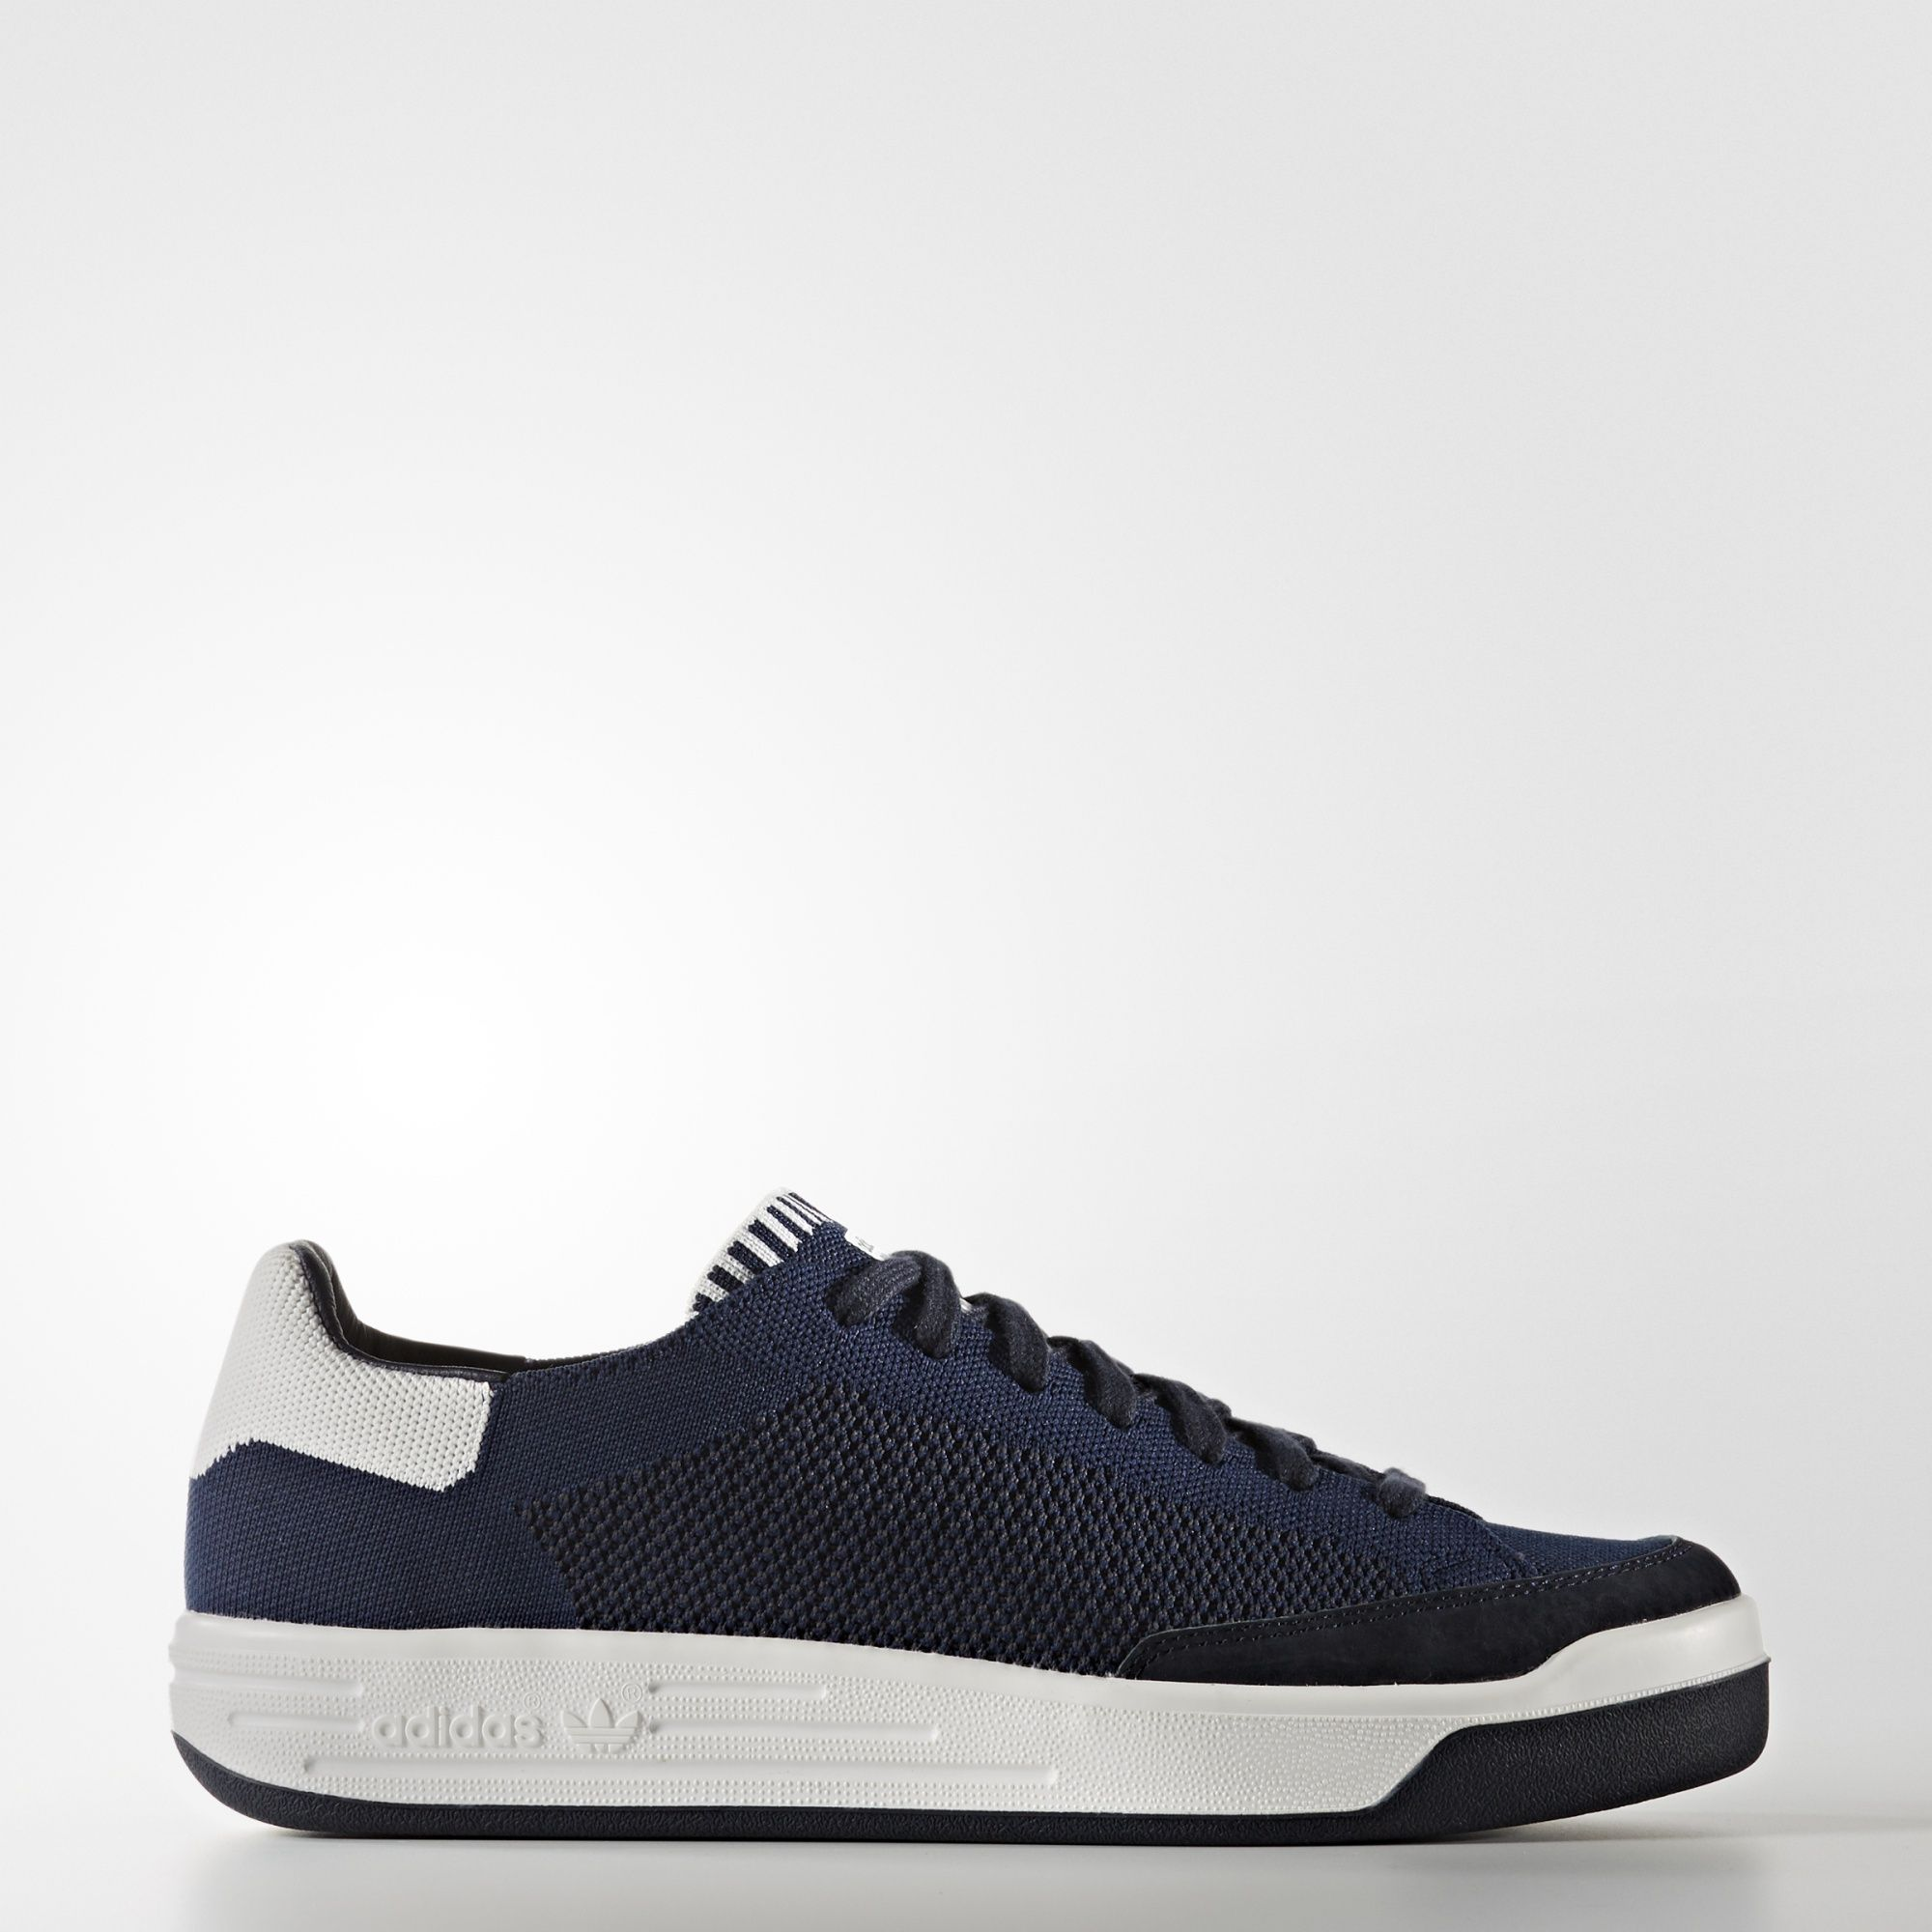 The iconic Rod Laver Super is named after one of tennis's all-time greats  whose